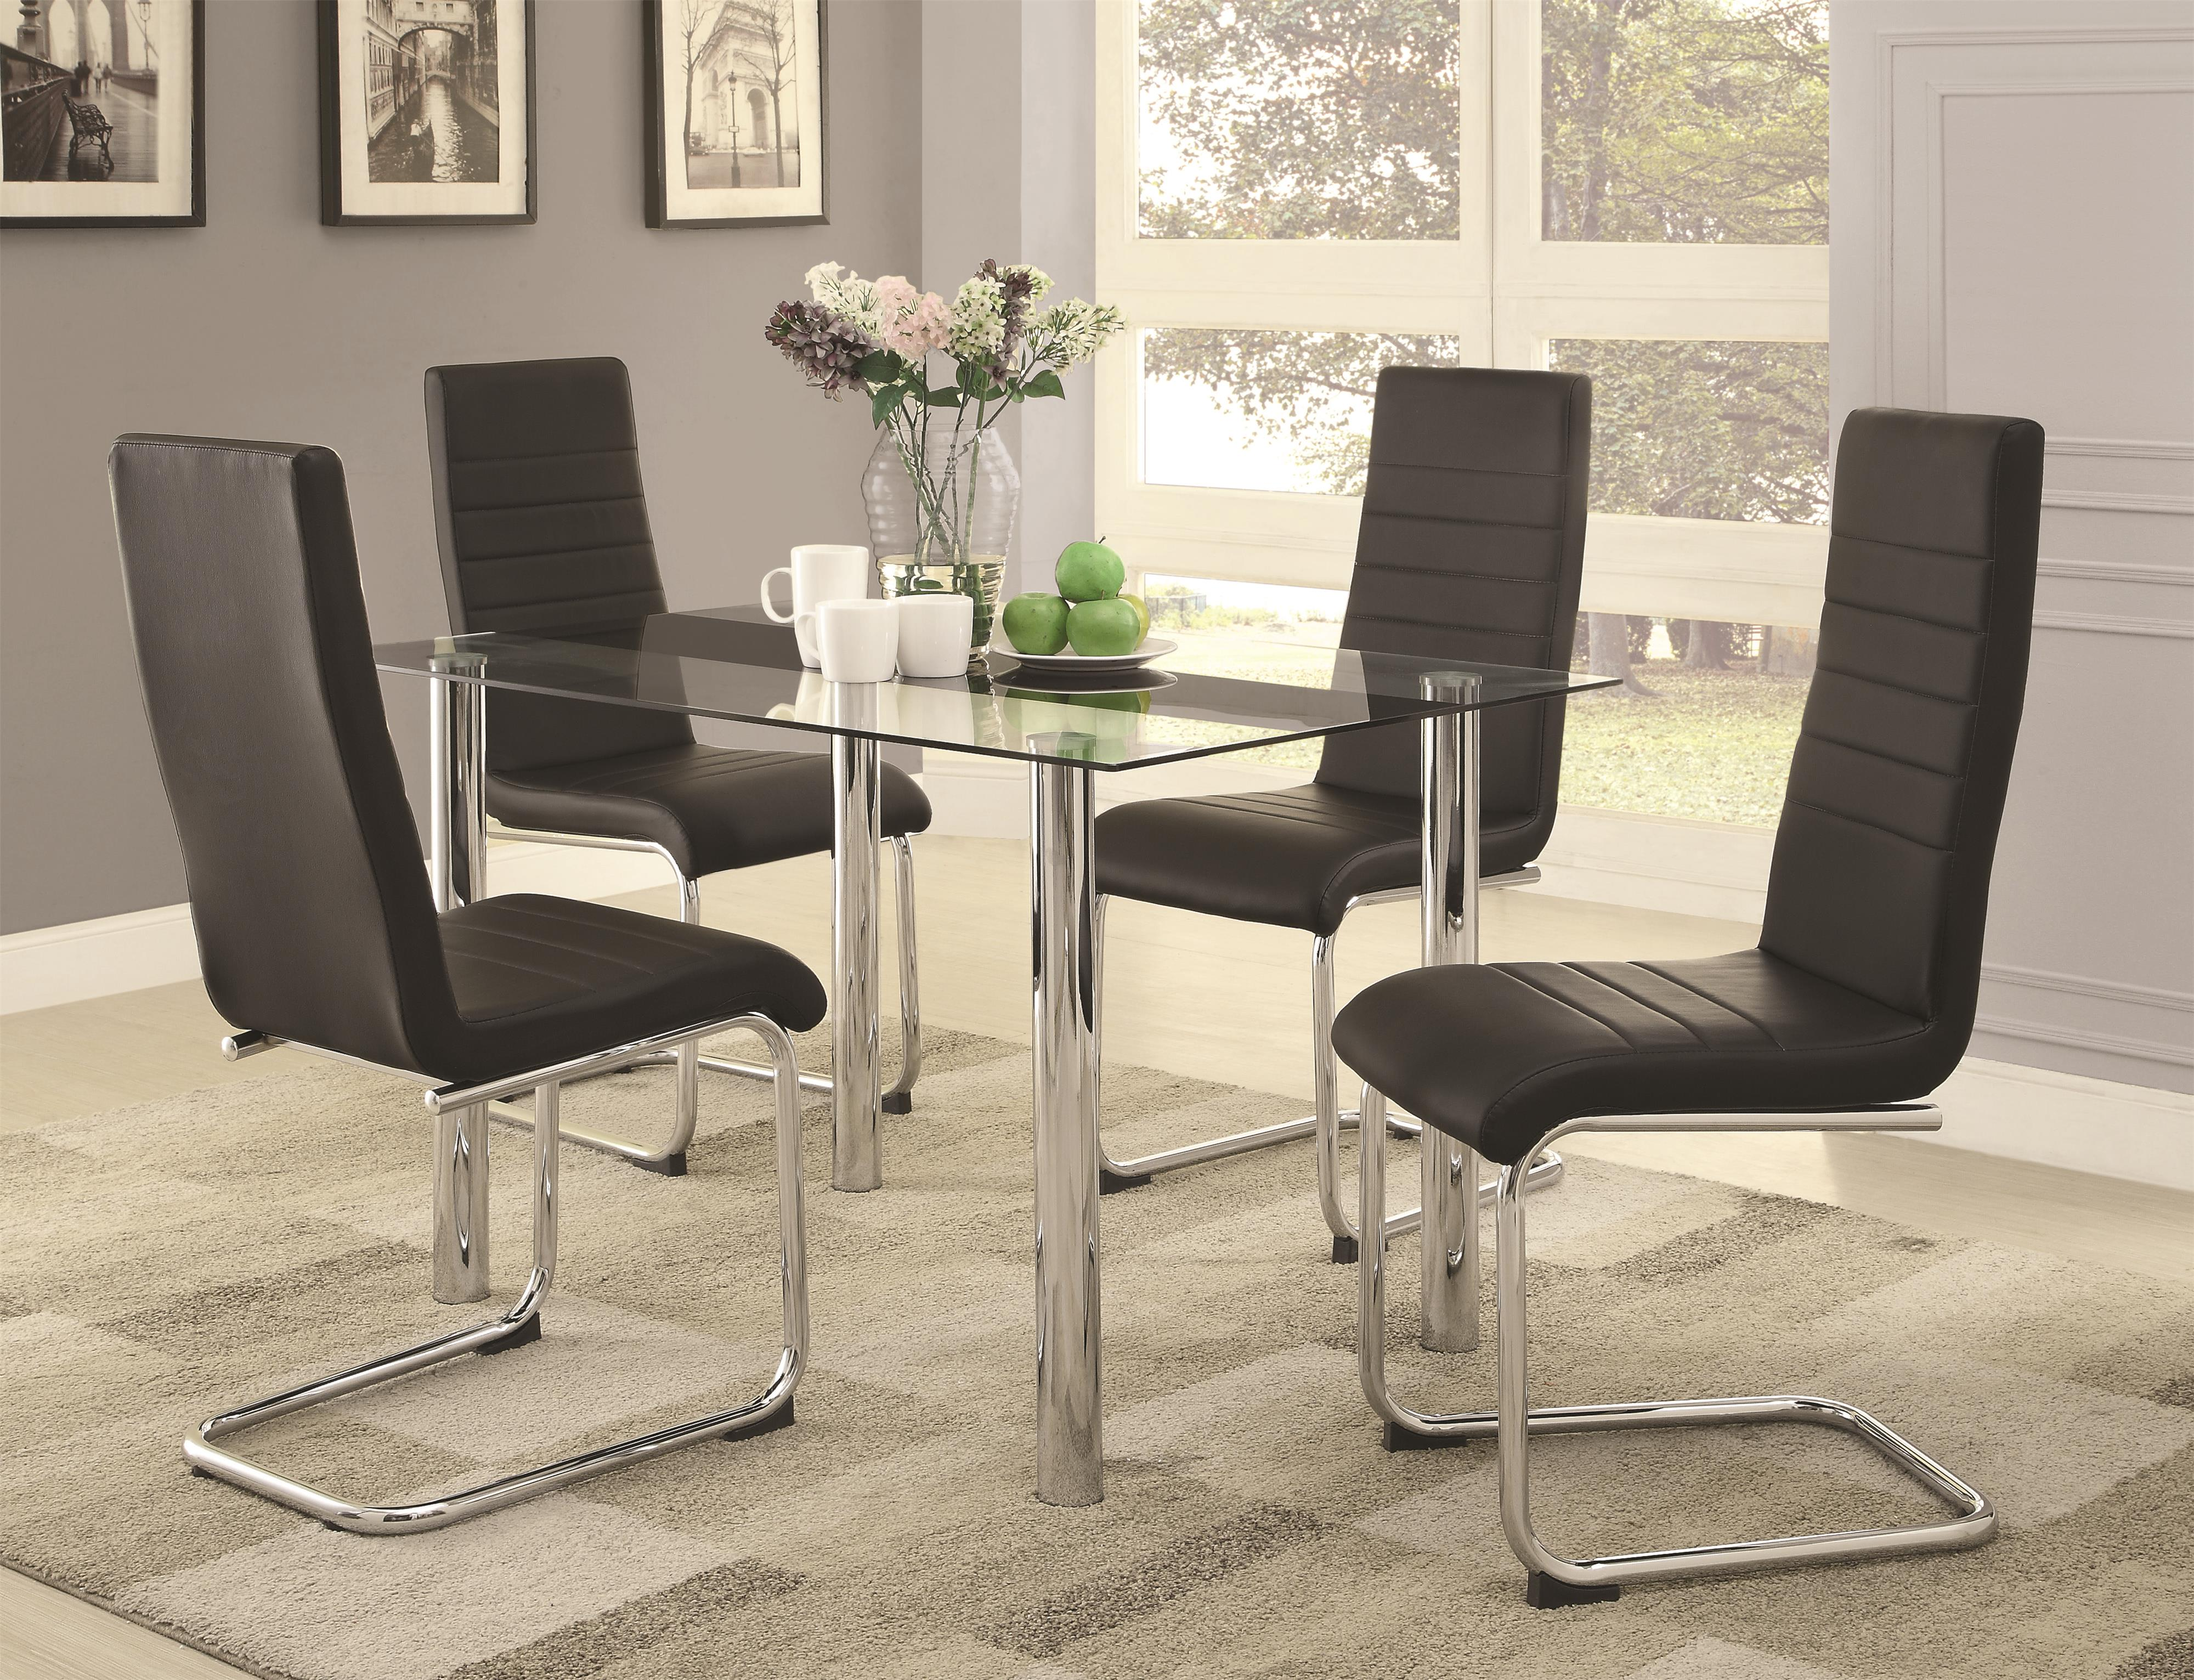 Glass dining table and chairs - Coaster Geneva Contemporary Glass Dining Table Coaster Fine Furniture